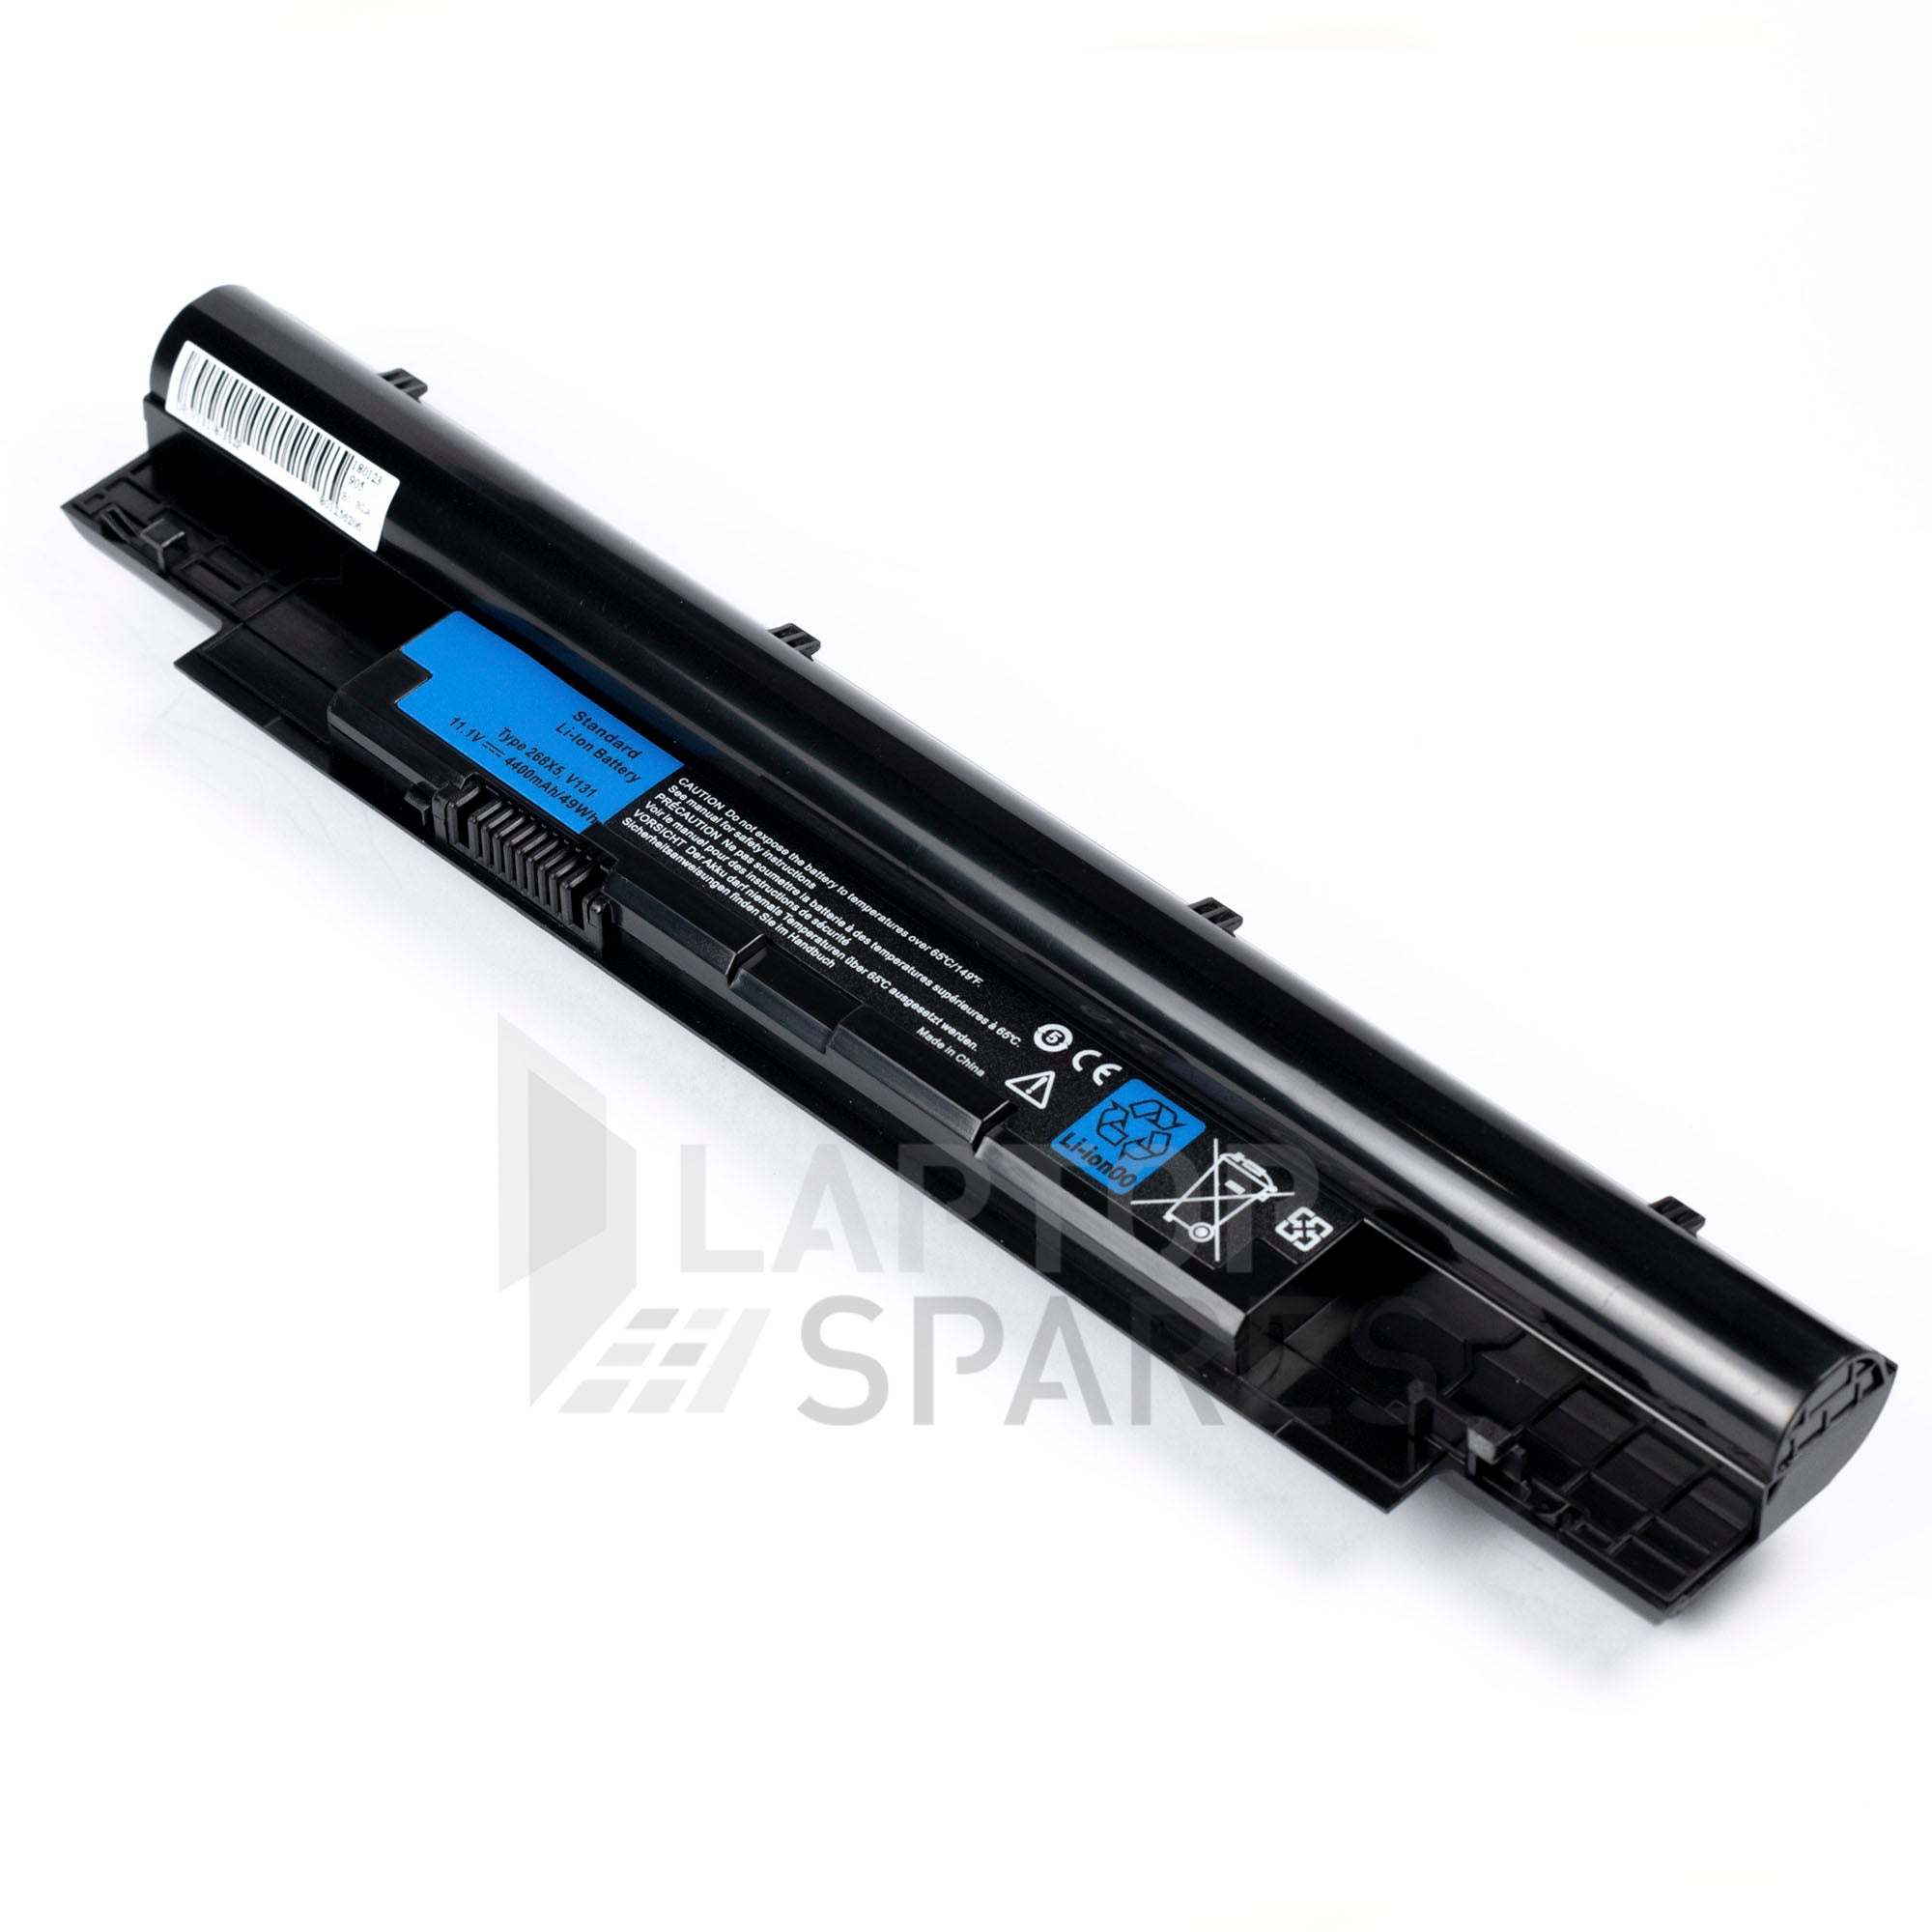 Dell Vostro V131 4400mAh 6 Cell Battery